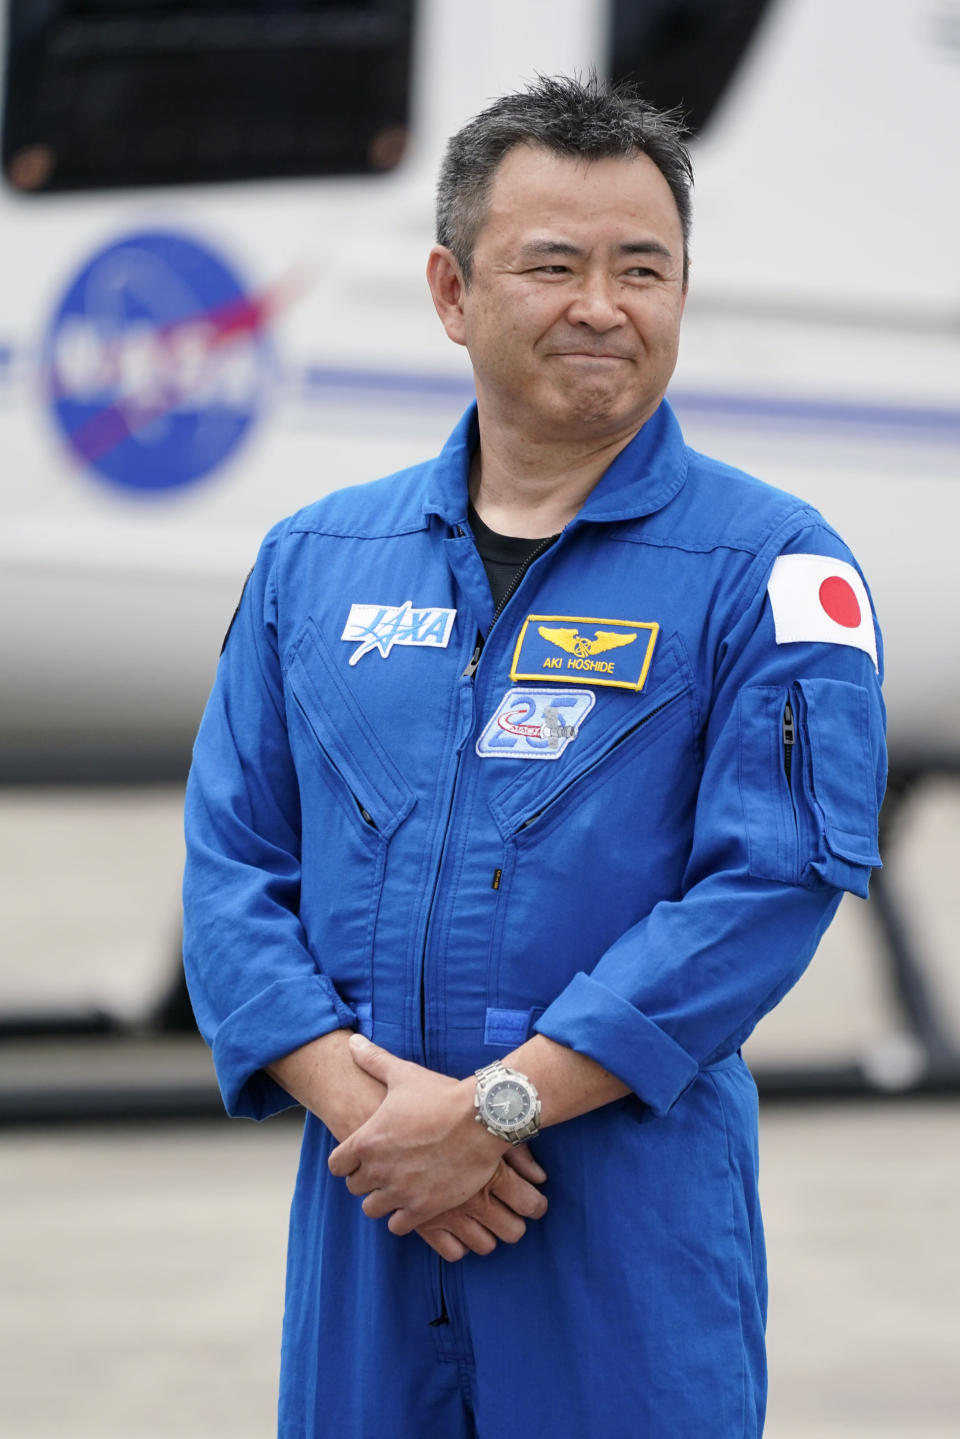 SpaceX Crew 2 member, Japan Aerospace Exploration Agency astronaut Akihiko Hoshide smiles as he arrives at the Kennedy Space Center in Cape Canaveral, Fla., Friday, April 16, 2021. The launch to the International Space Station is targeted for April 22. (AP Photo/John Raoux)